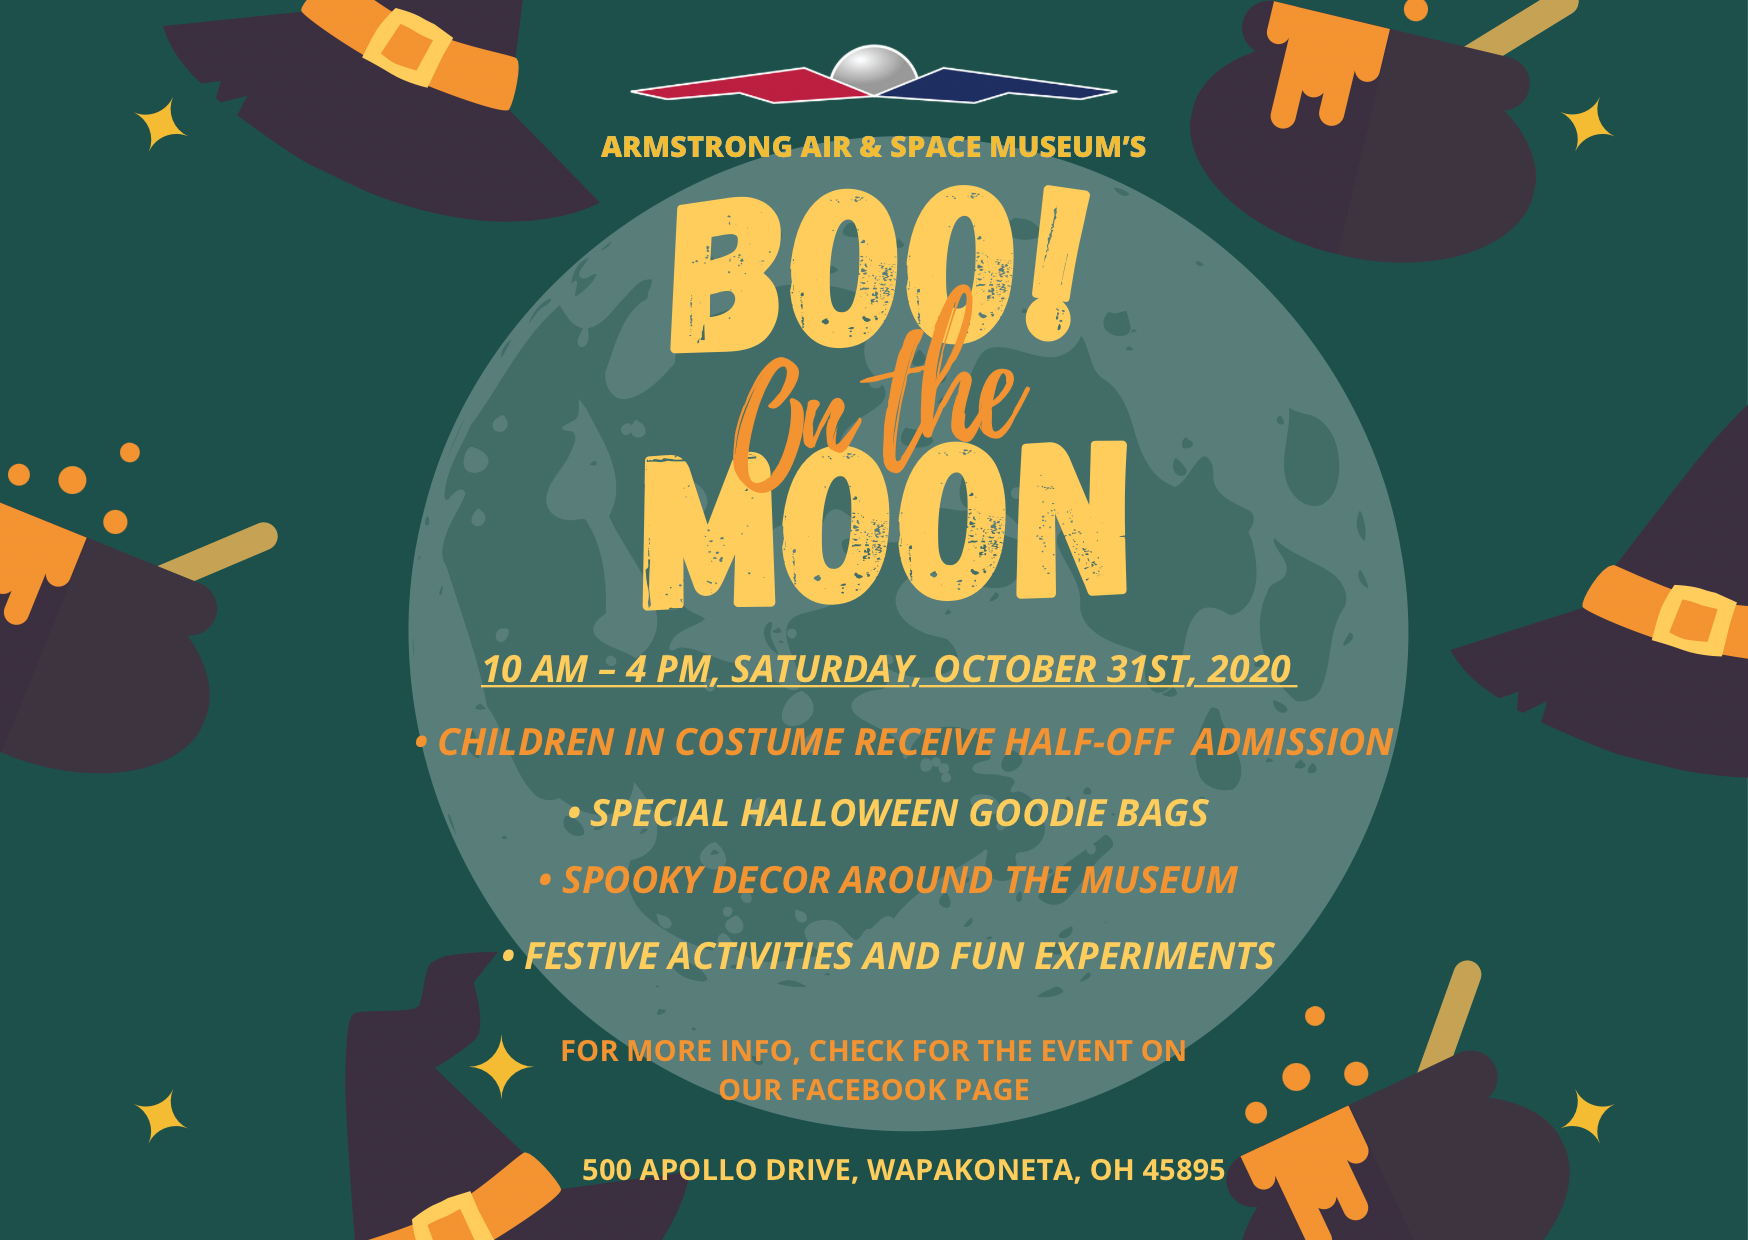 Logo for the 2020 Boo! On the Moon